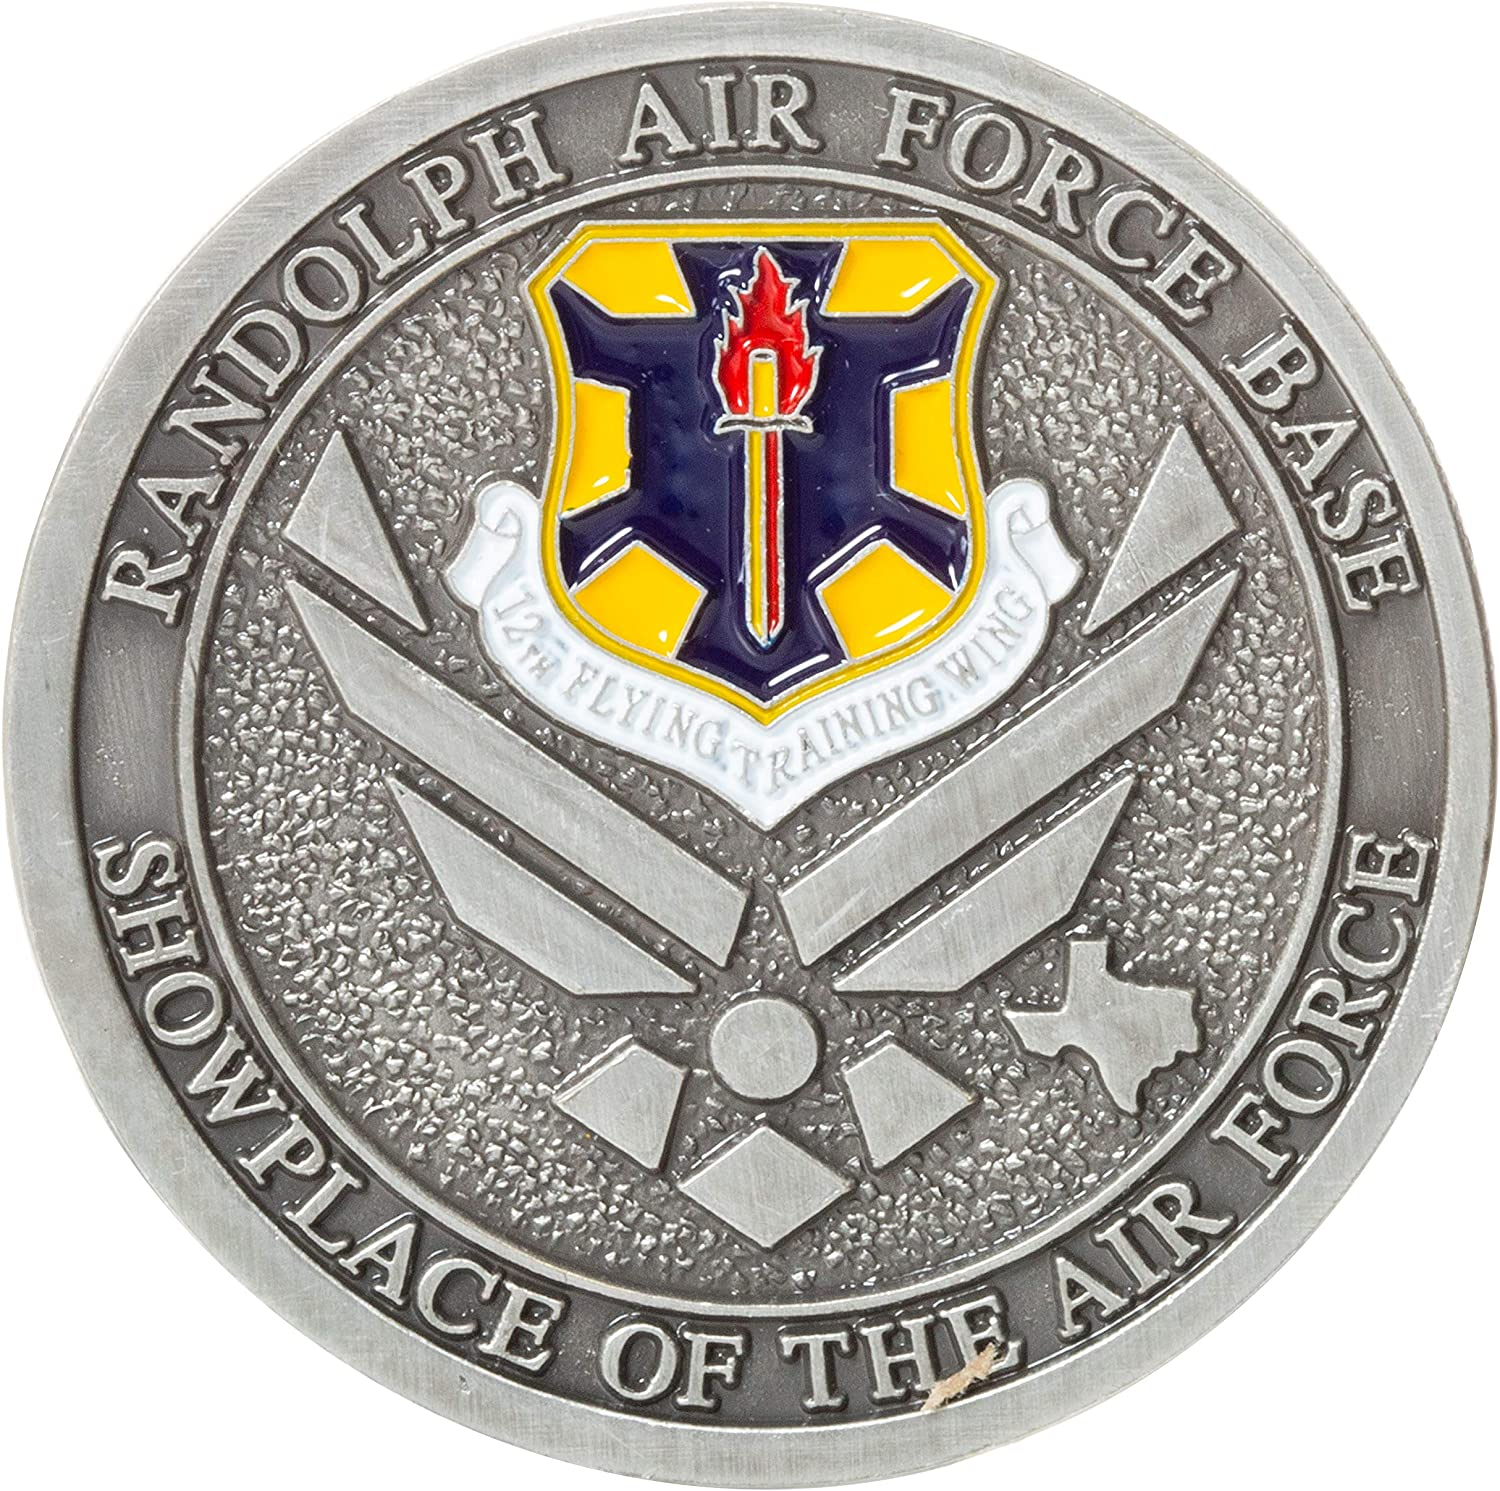 United States Air Force USAF Randolph Air Force Base AFG Showplace of The Air Force Challenge Coin